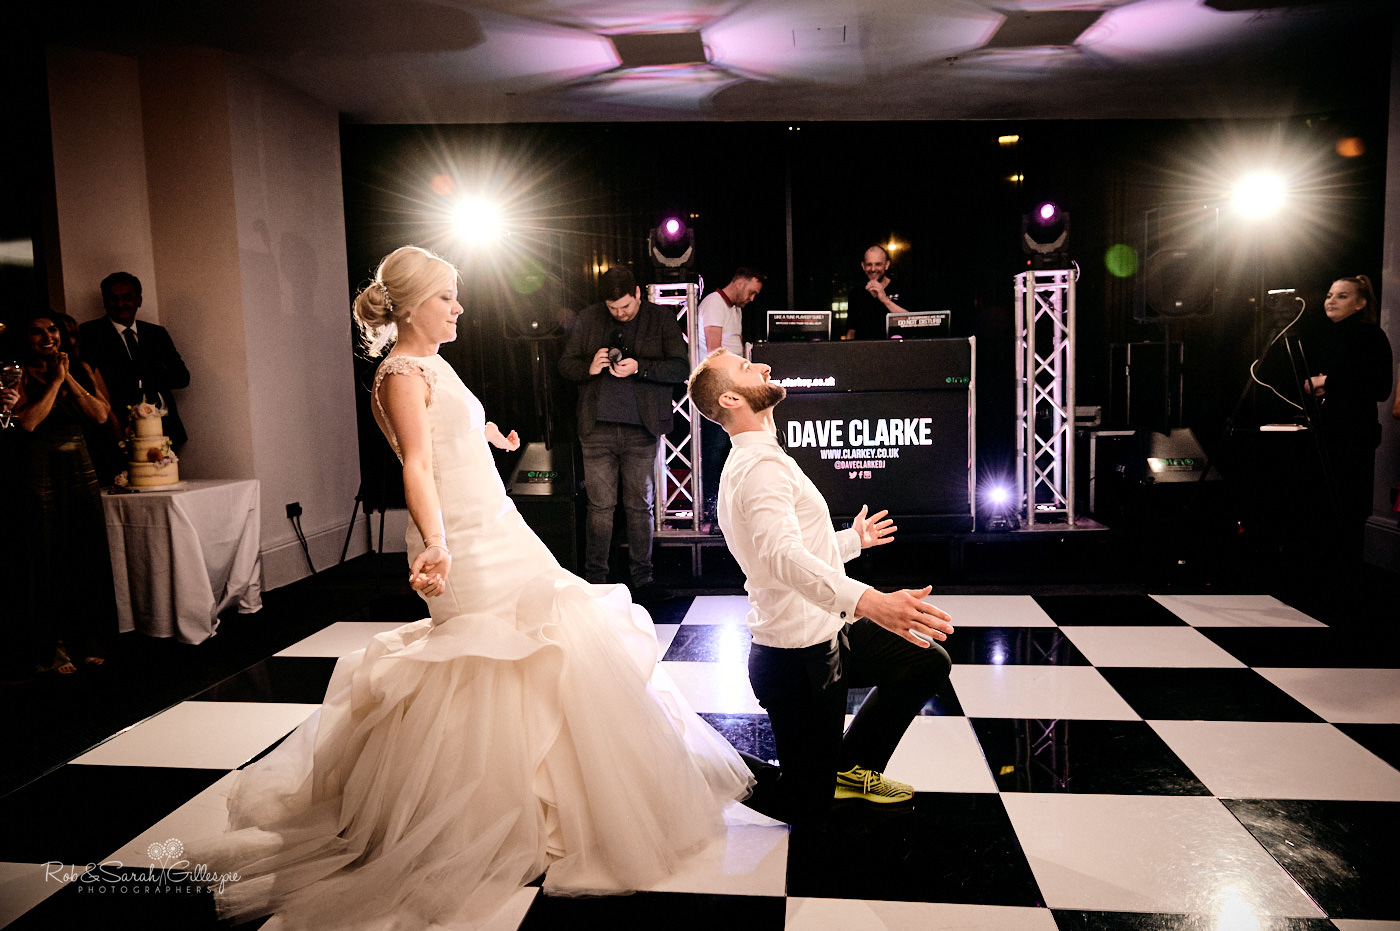 Bride and groom first dance at The Cube wedding venue in Birmingham